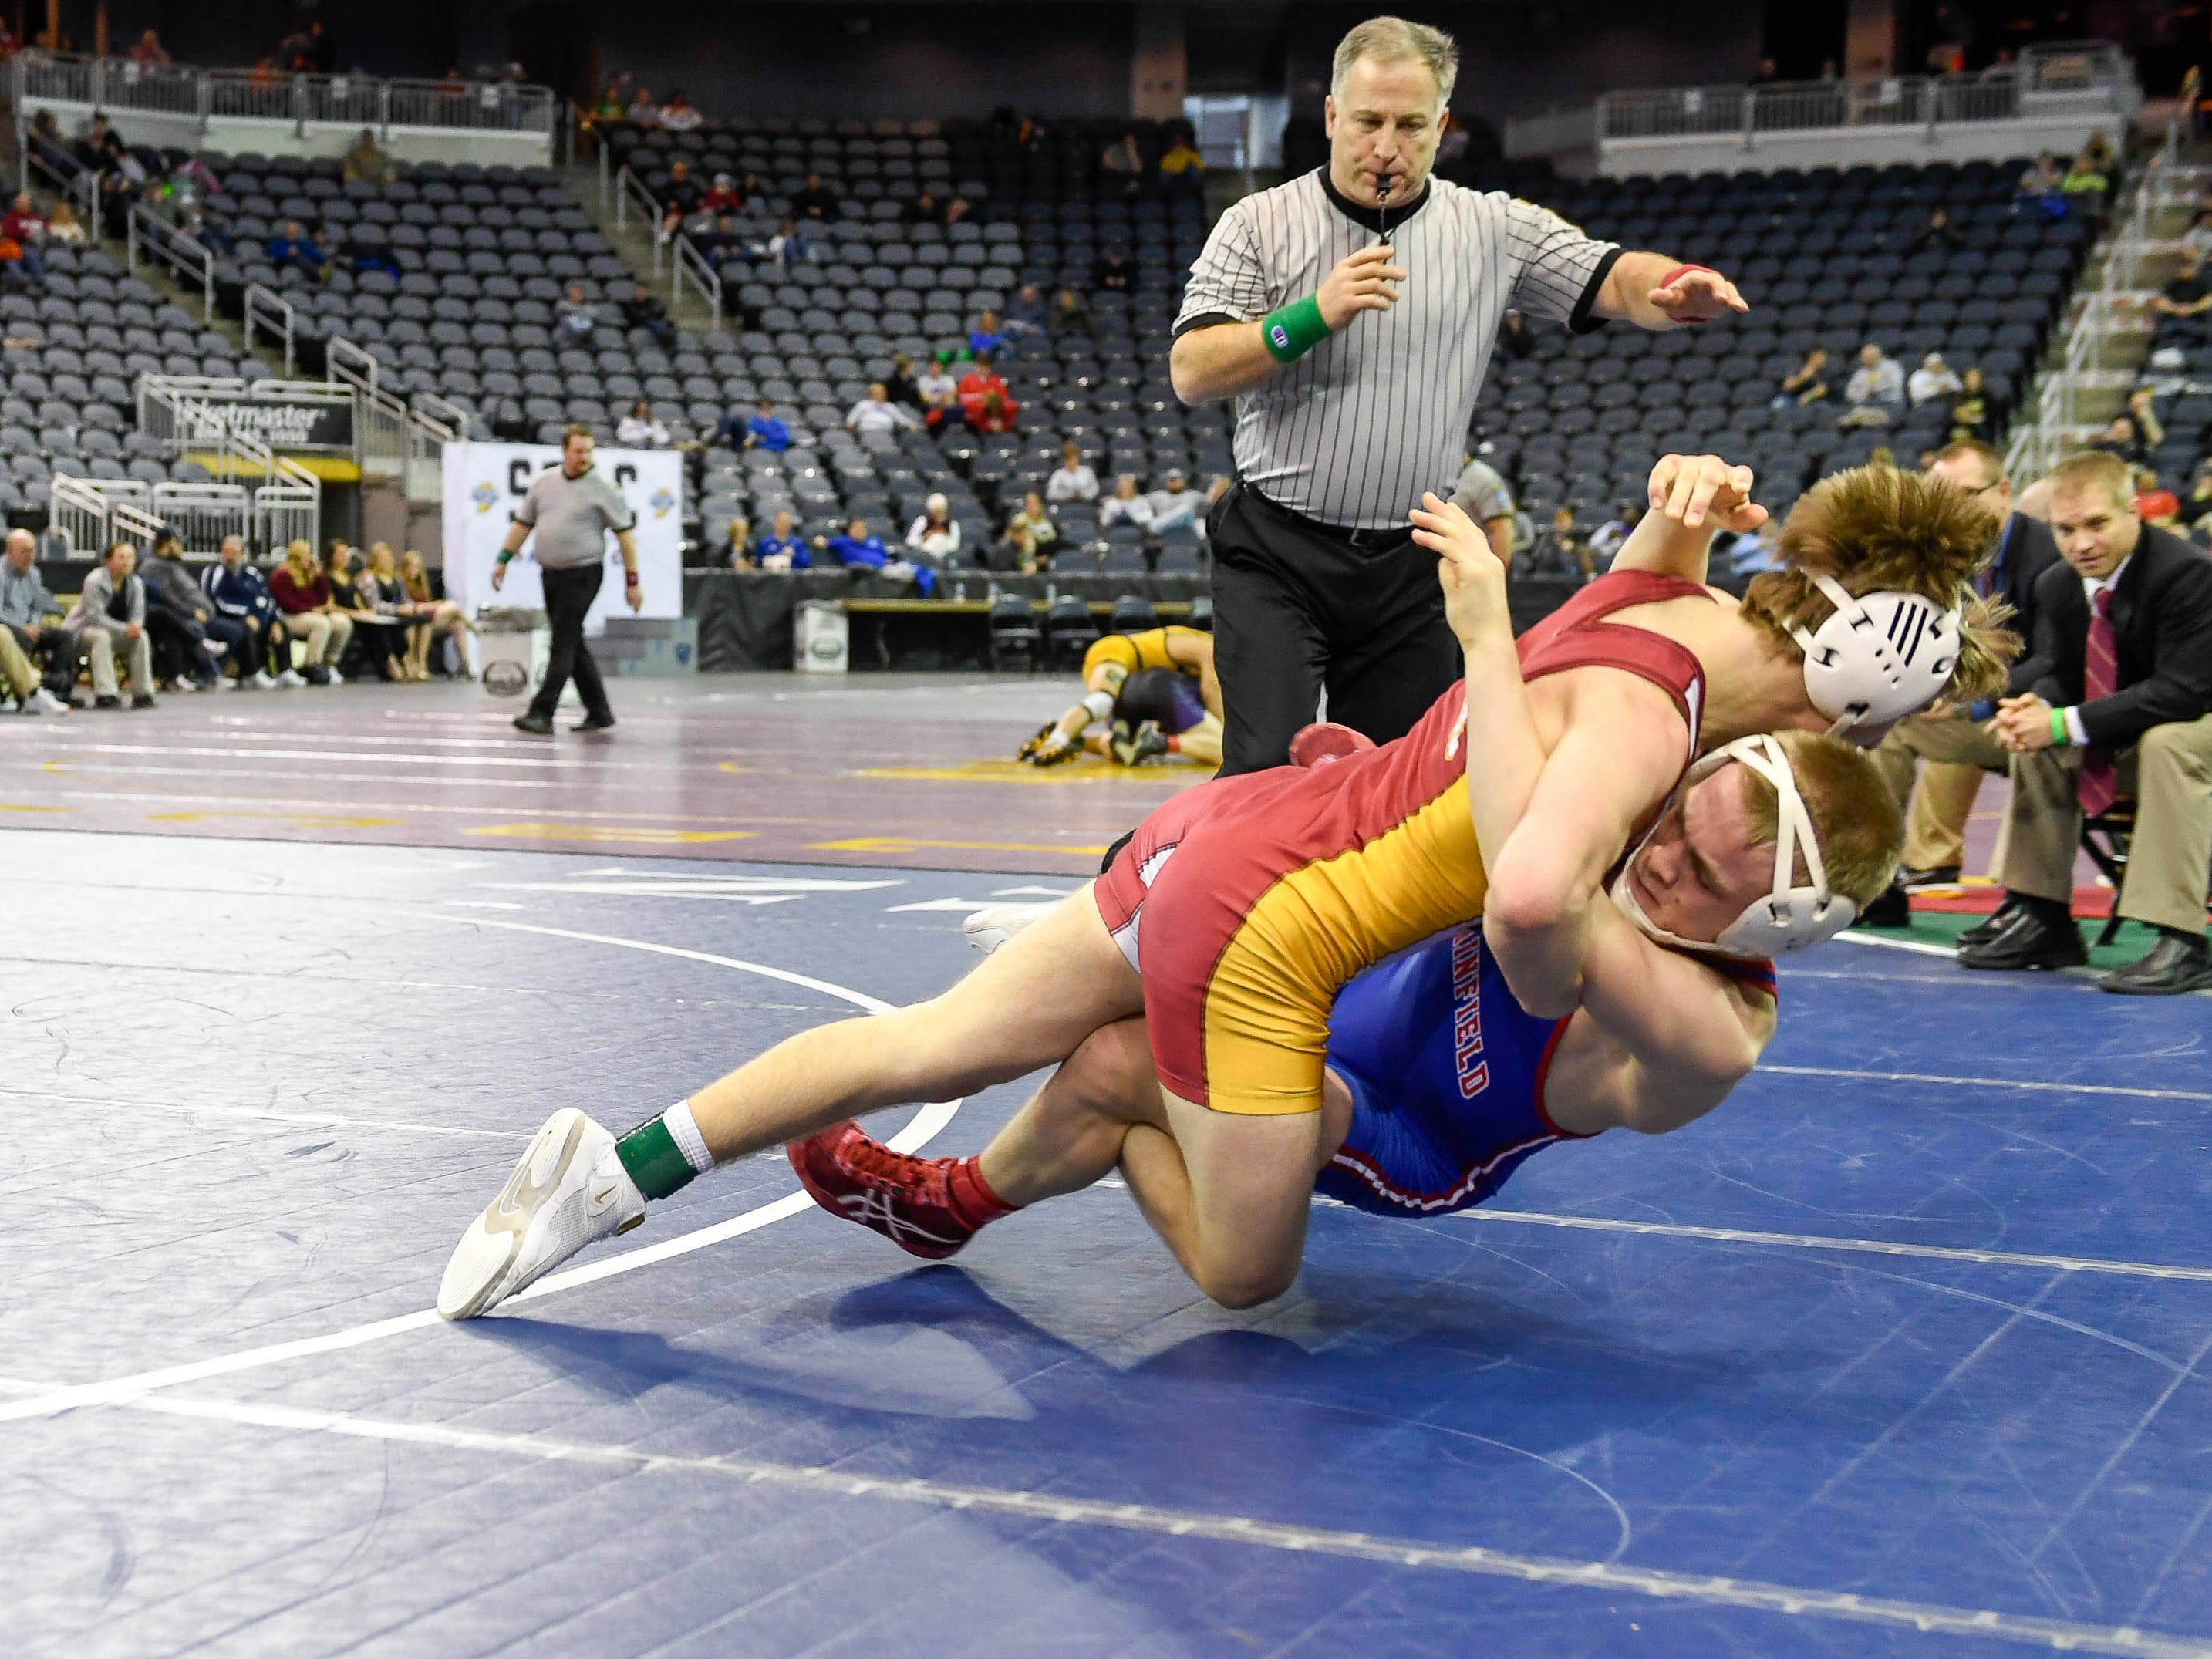 Flying out of the ring, Clay Egll, Mater Dei, wrestles Logan Boe, Plainfield, for third place in the 132 weight class at the finals of the Indiana High School Athletic Association Semi-State Wrestling Tournament held at the Ford Center Saturday, February 9, 2019.